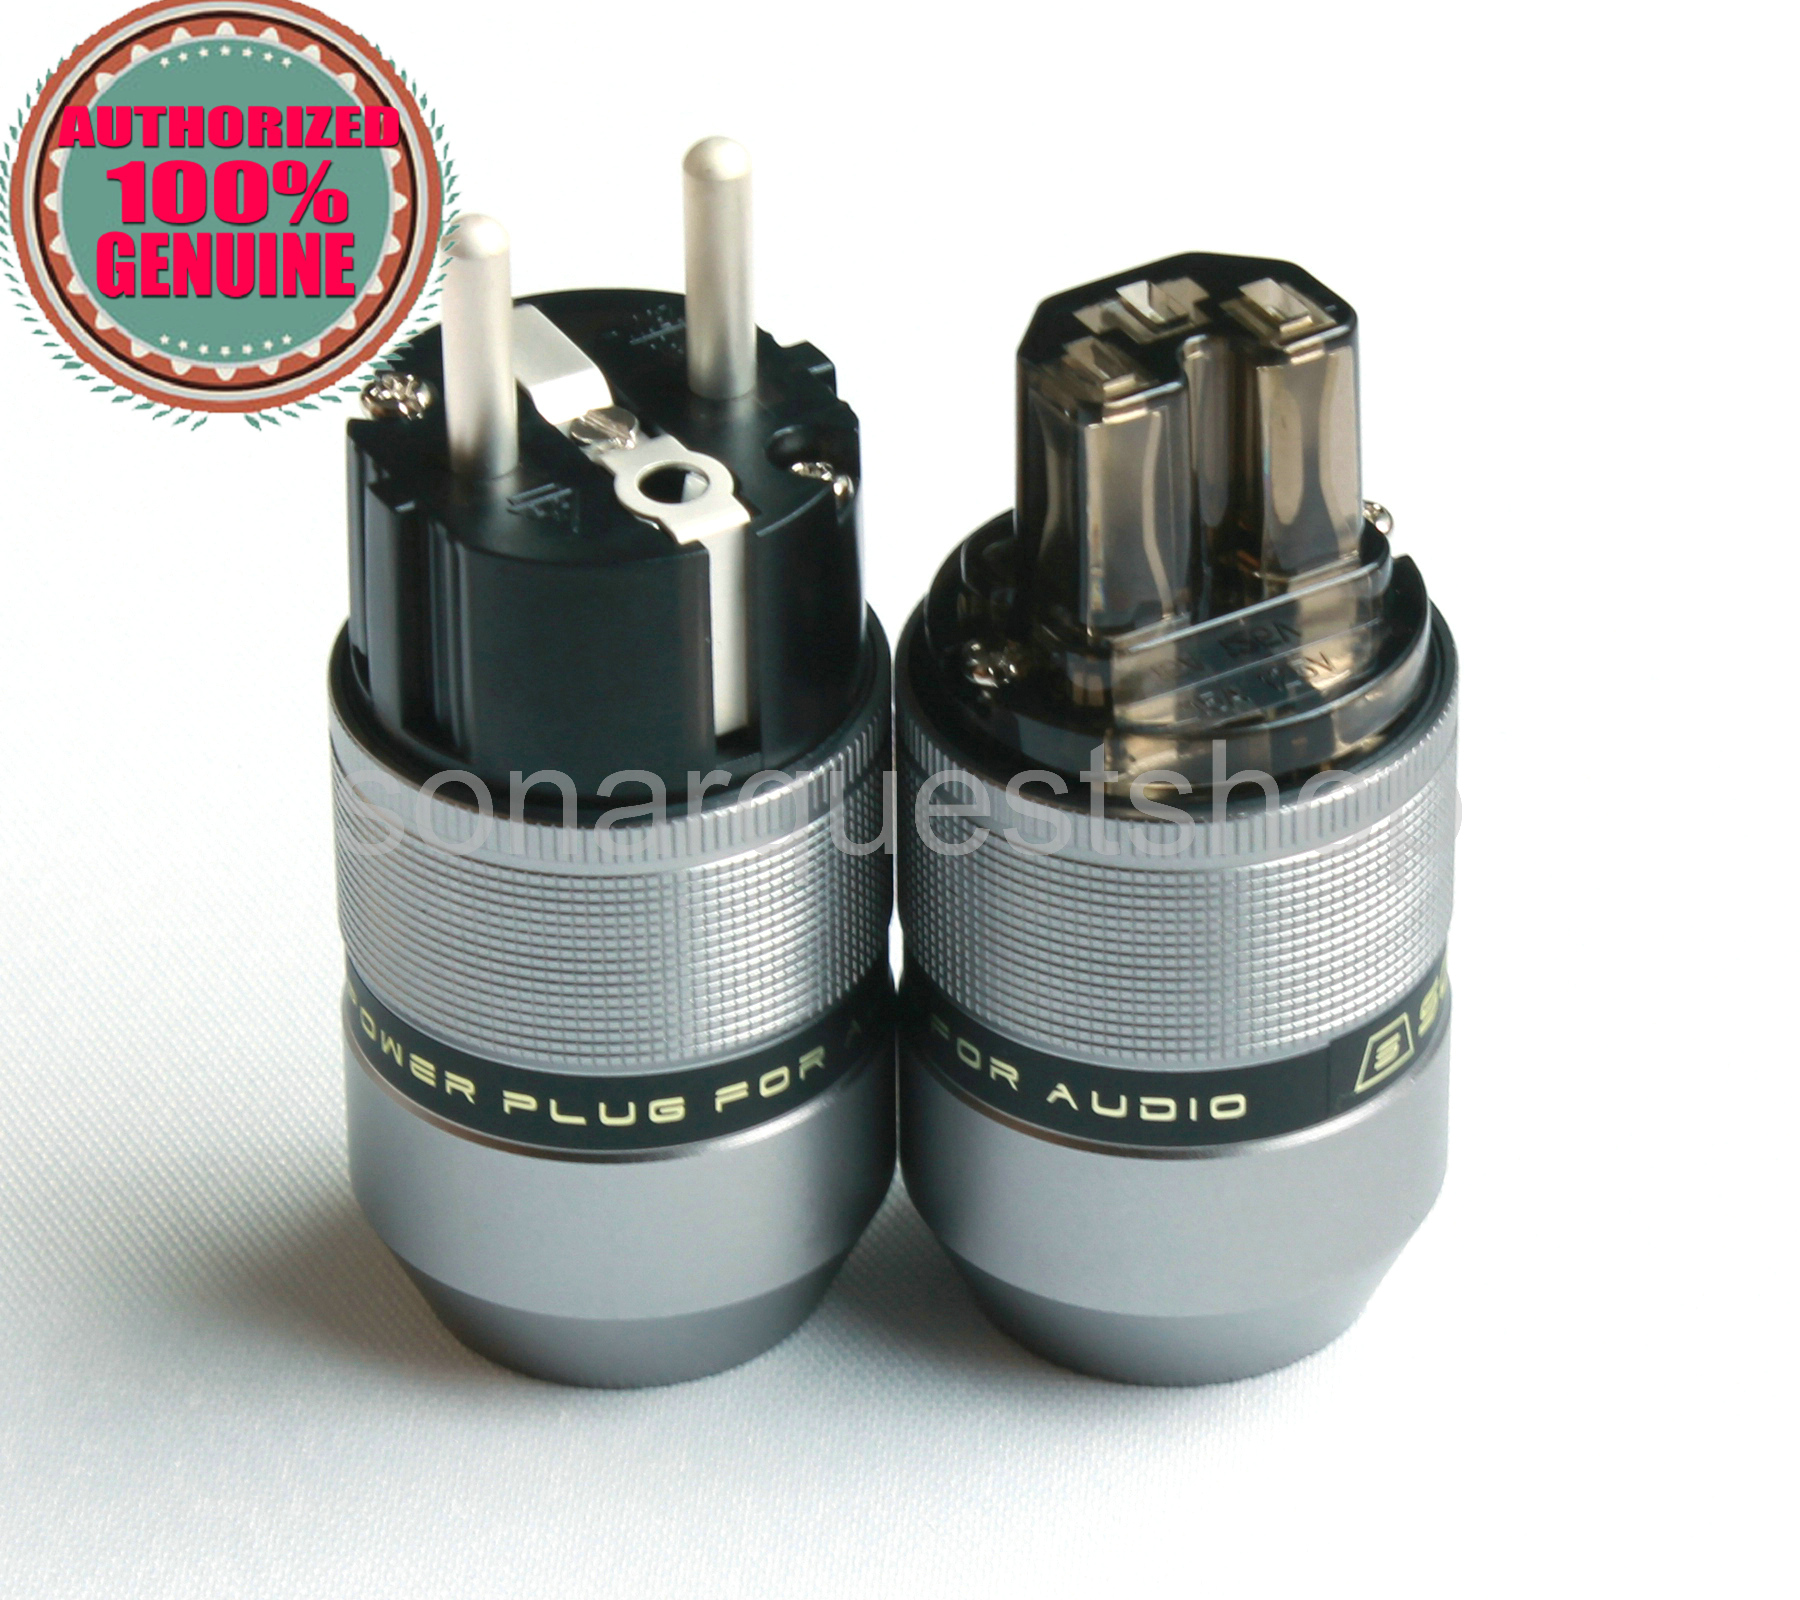 SONARQUEST PA-40E(Ag)+PA-40F(Ag) EU silver Plated Gray Special Aluminum alloy Power Plug & IEC Connector